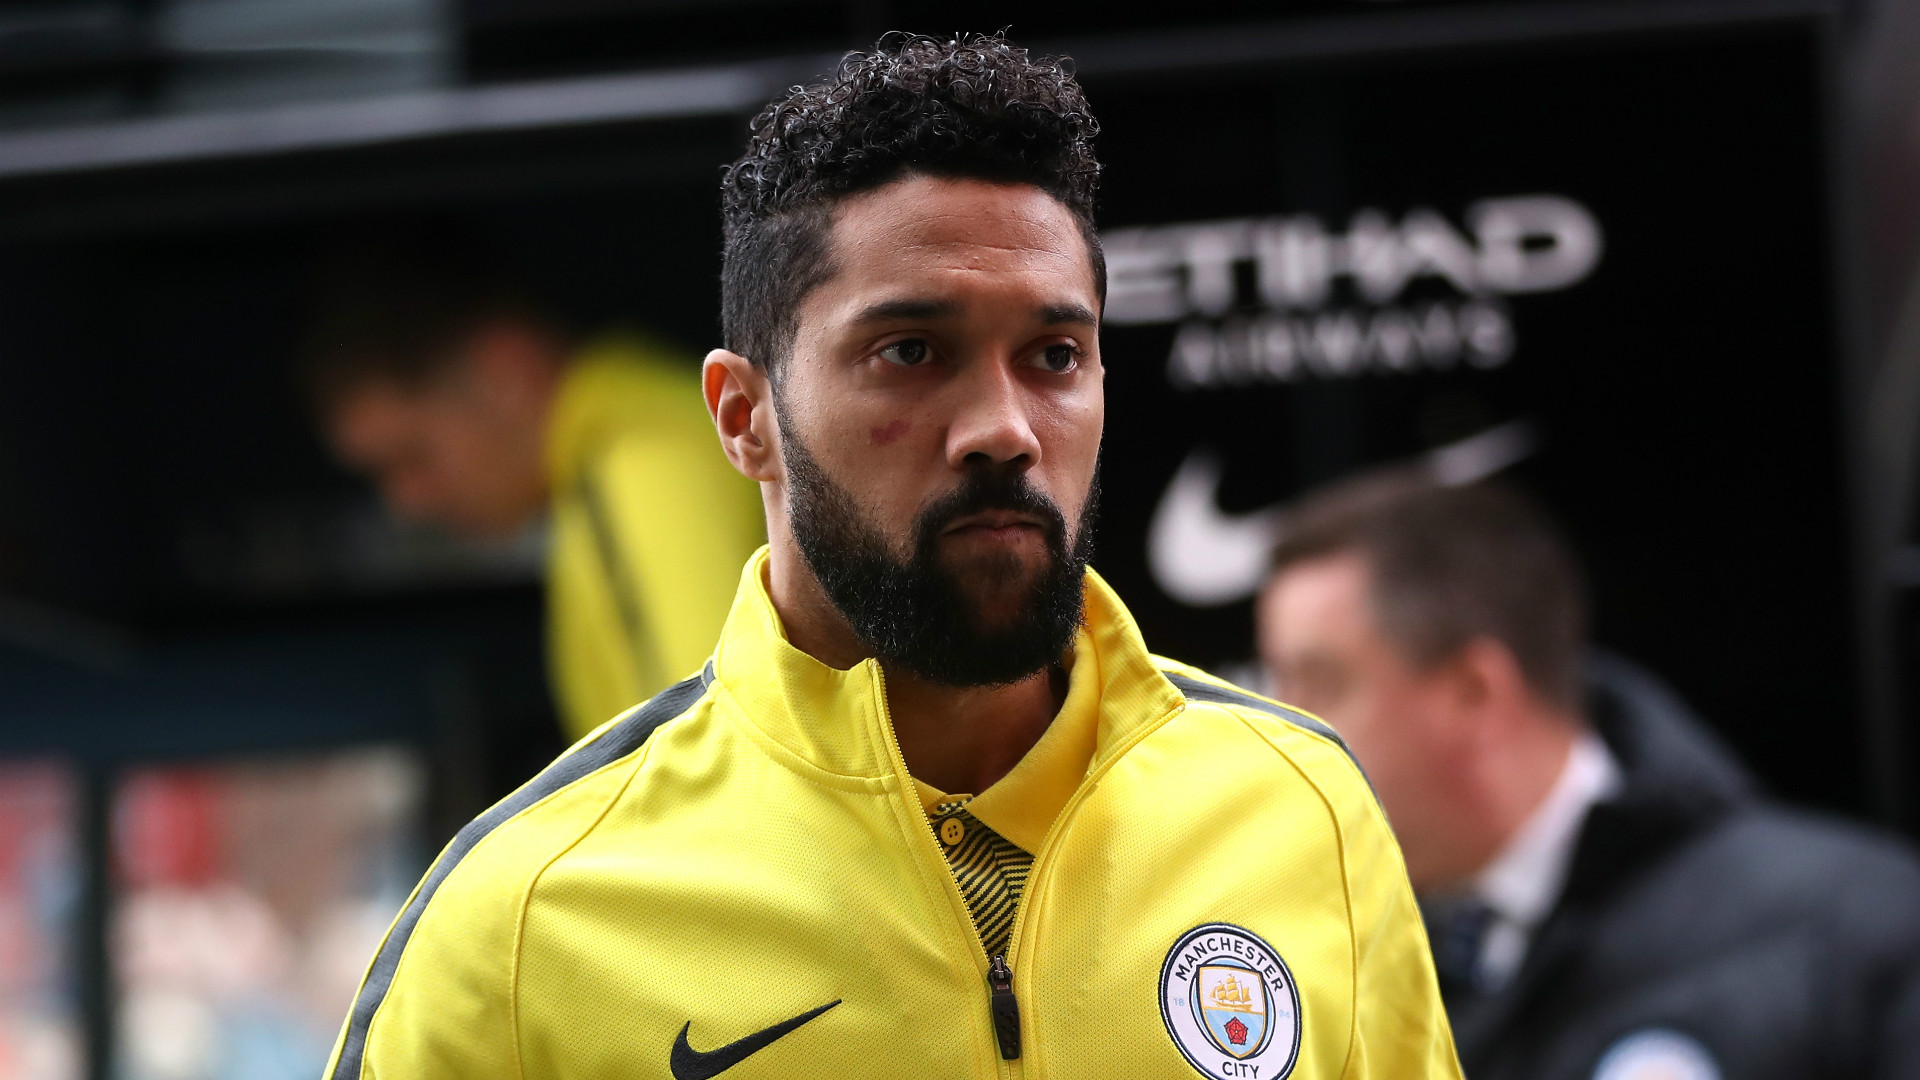 clichy looking just interested for someone real